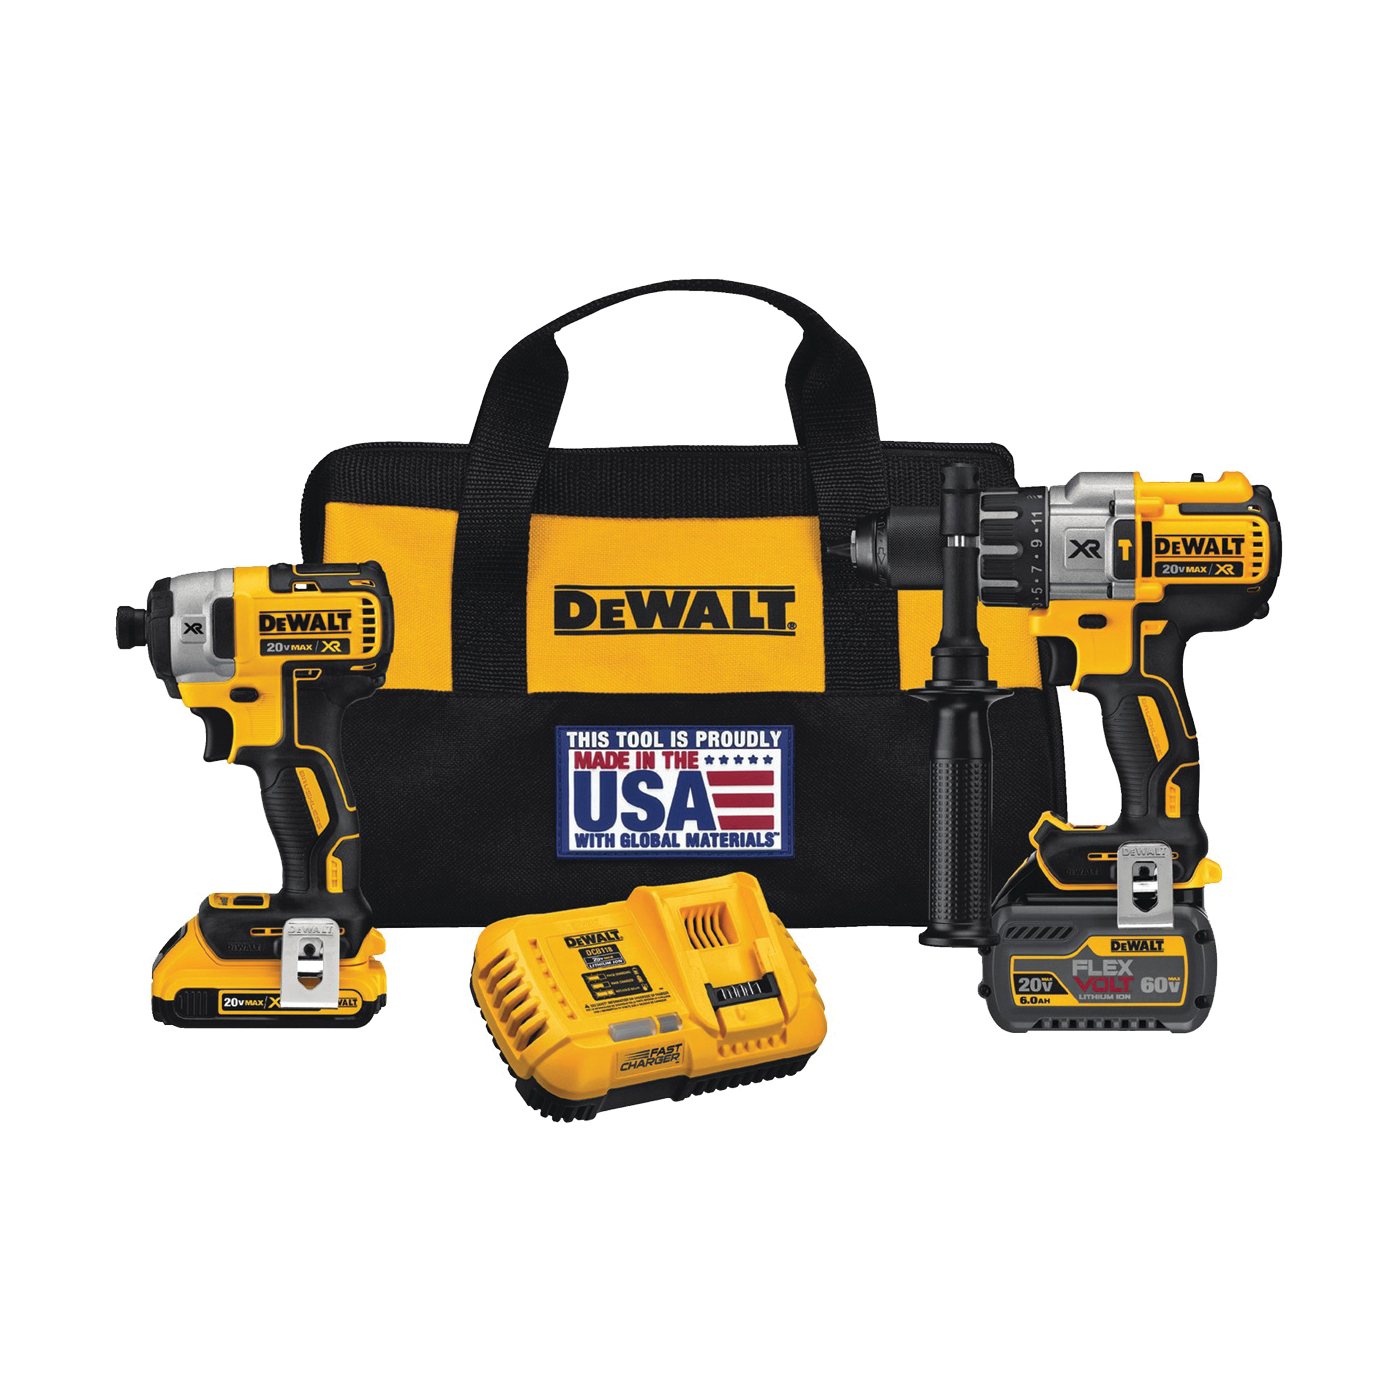 Picture of DeWALT DCK299D1T1 Combo Kit, Battery Included: Yes